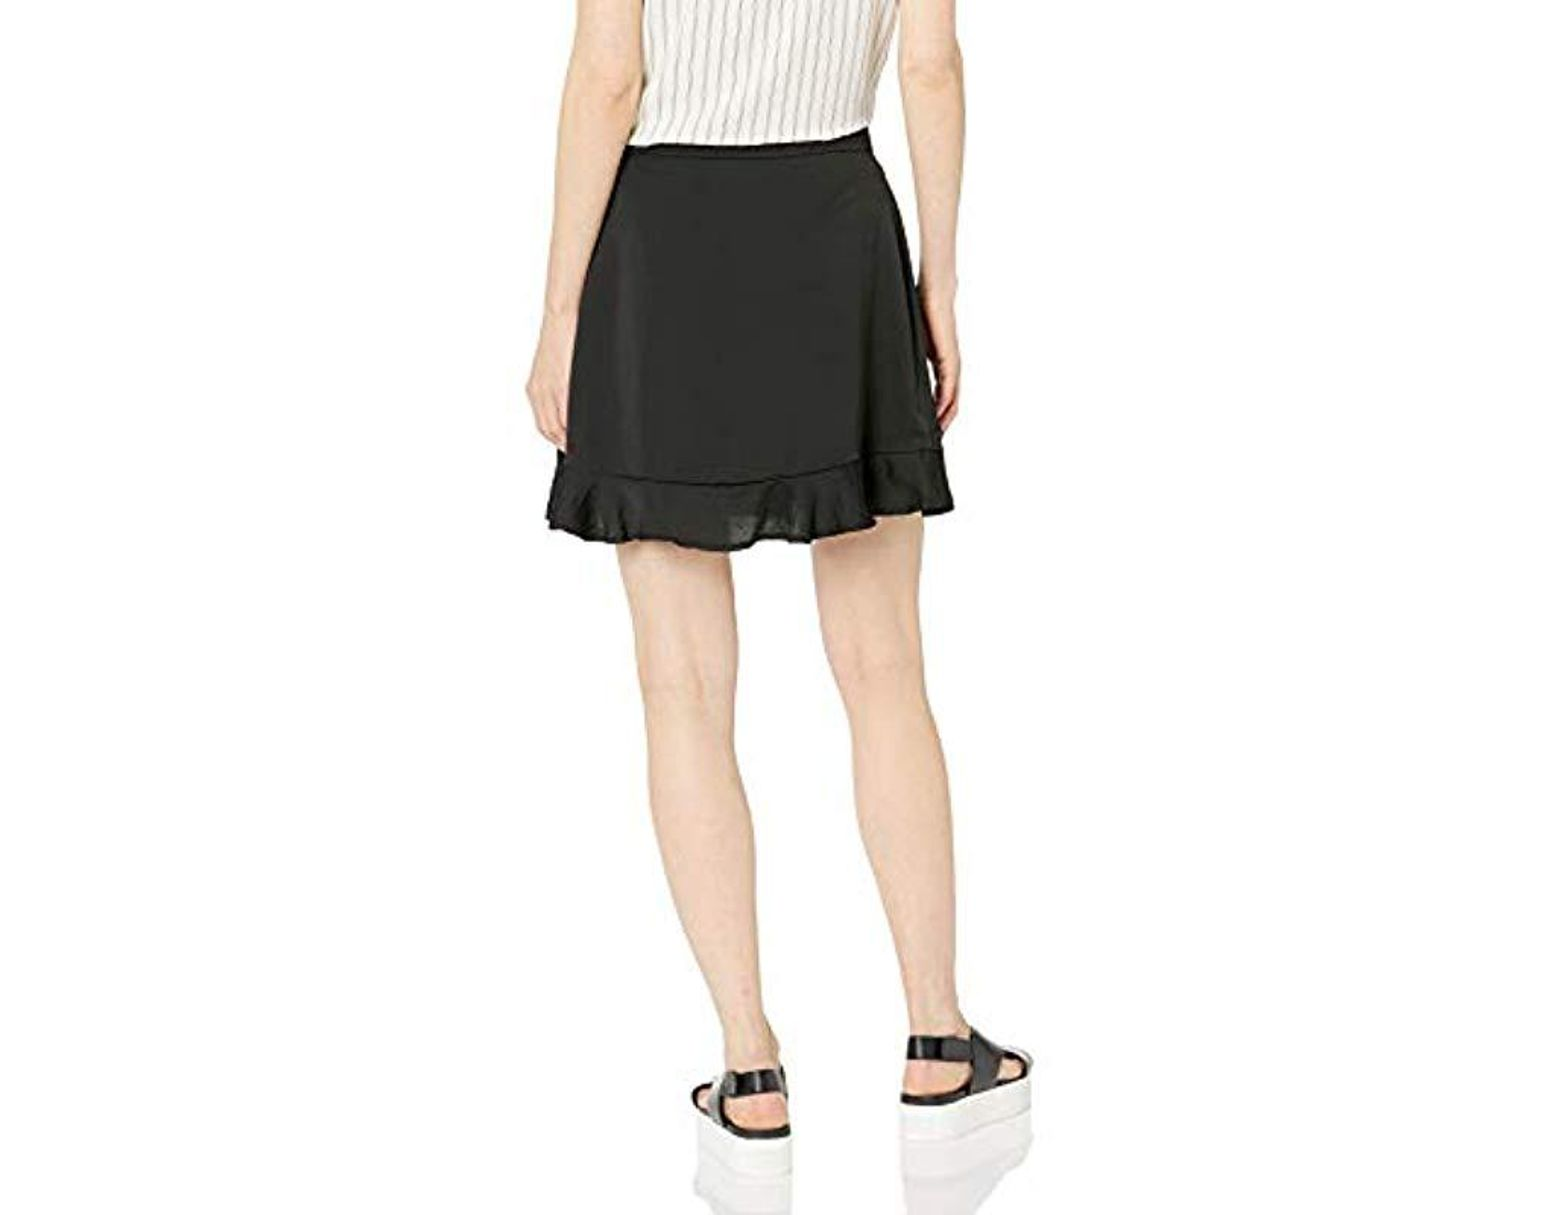 fbd6ca77bf Cupcakes And Cashmere Zeke Satin Flounce Skirt in Black - Lyst